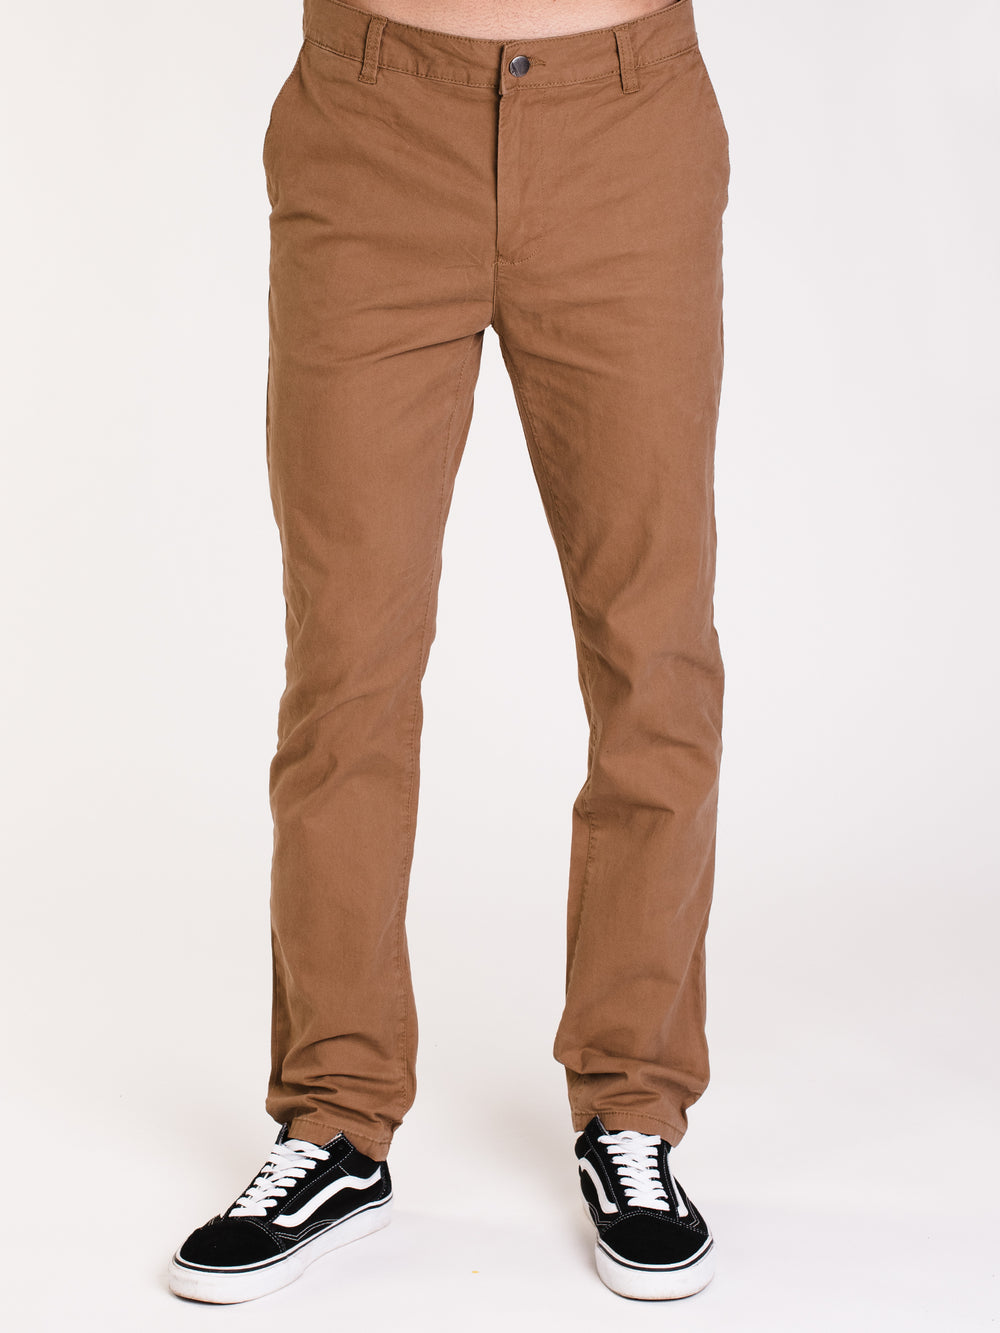 MENS SPRING SLIM CHINO - FLAX - CLEARANCE